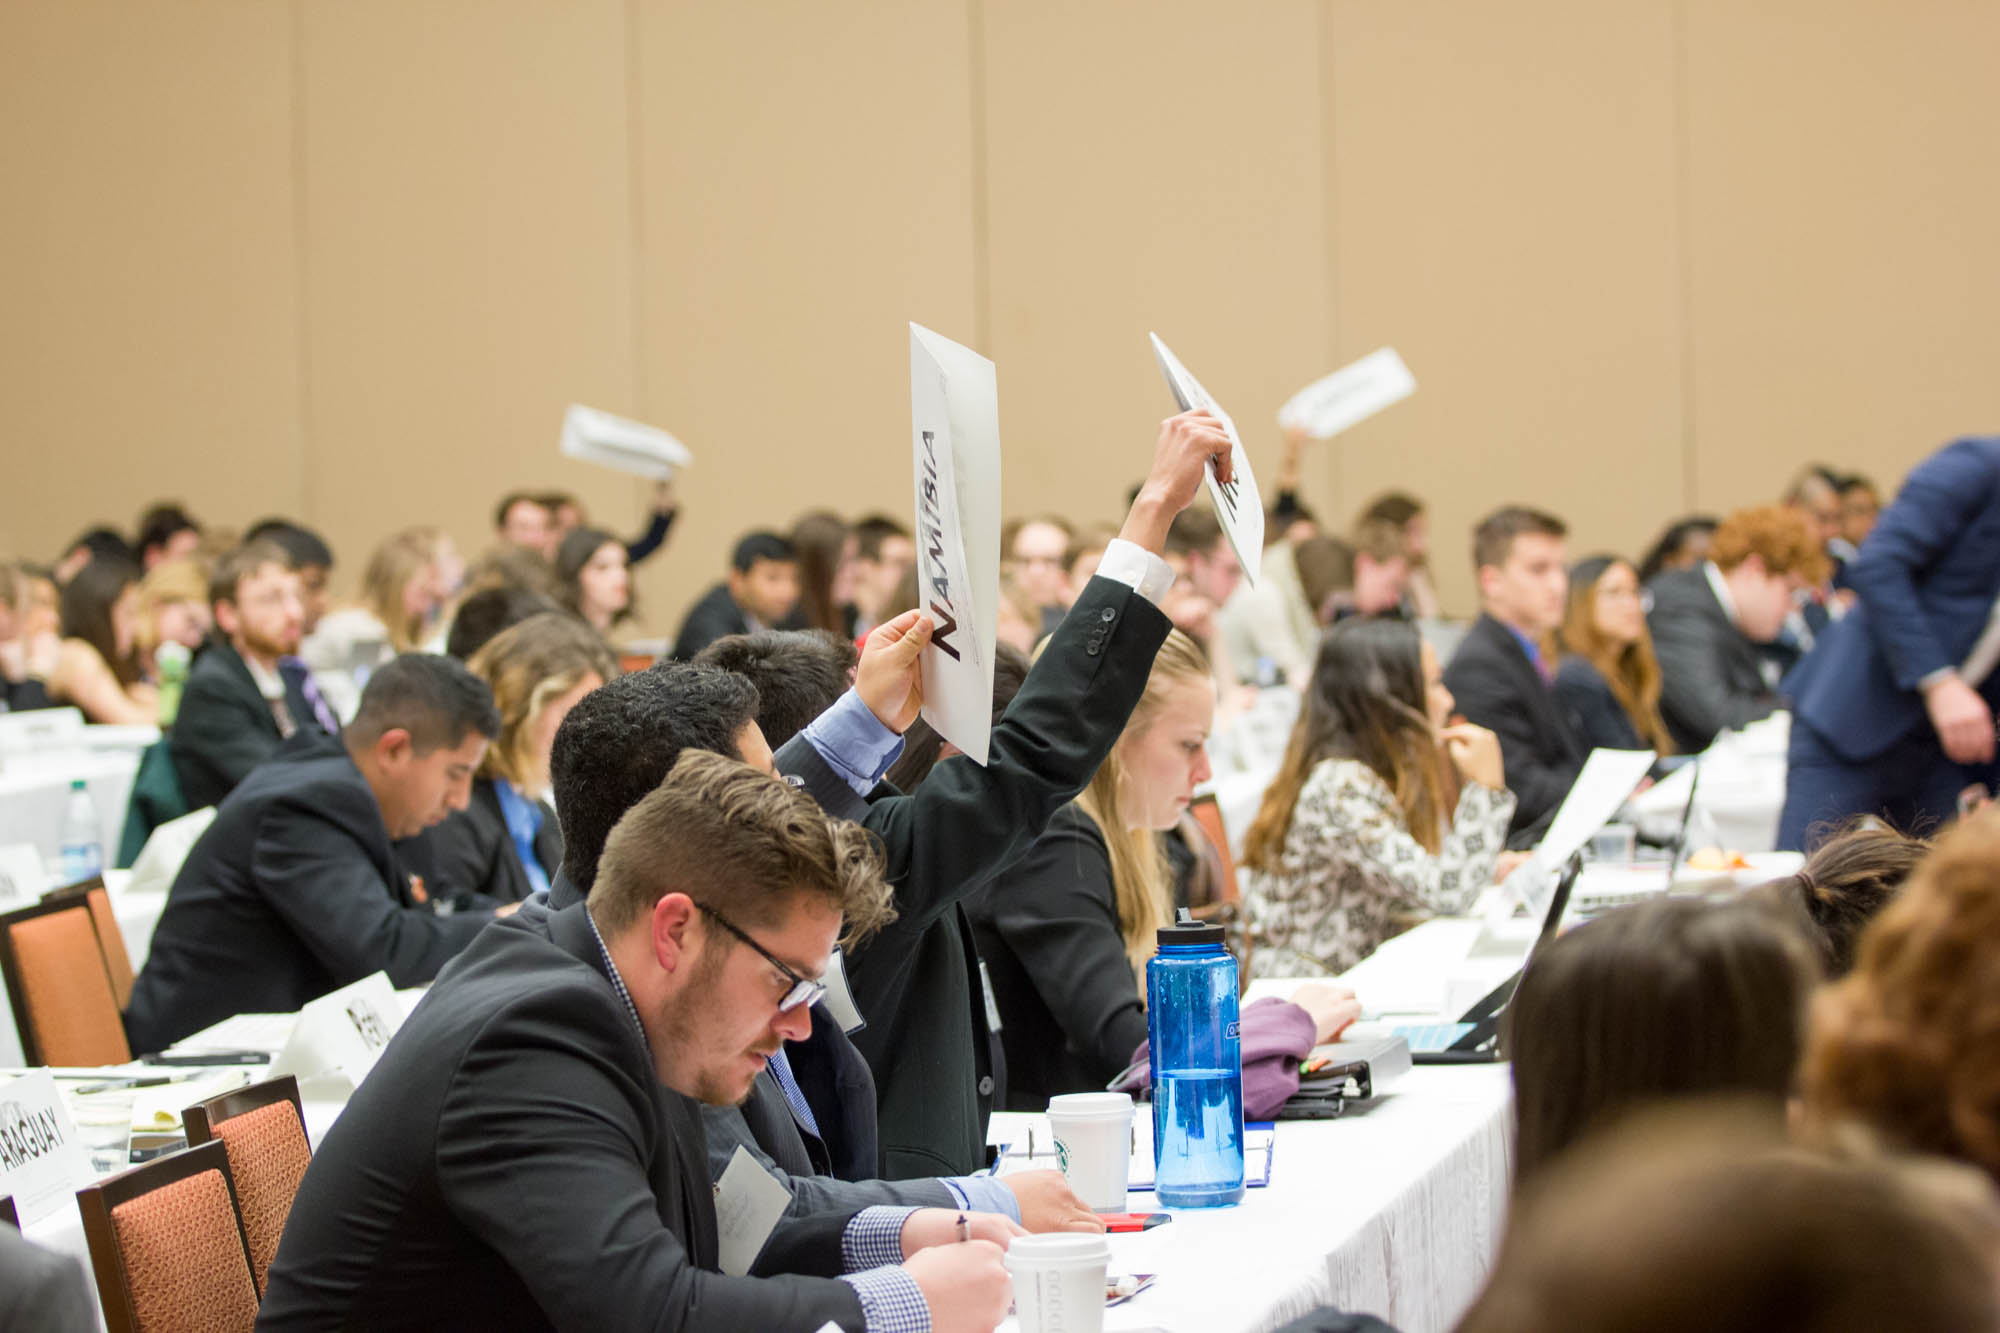 Welcome to the new AMUN Accords. Participants at the AMUN Chicago Model UN Conference